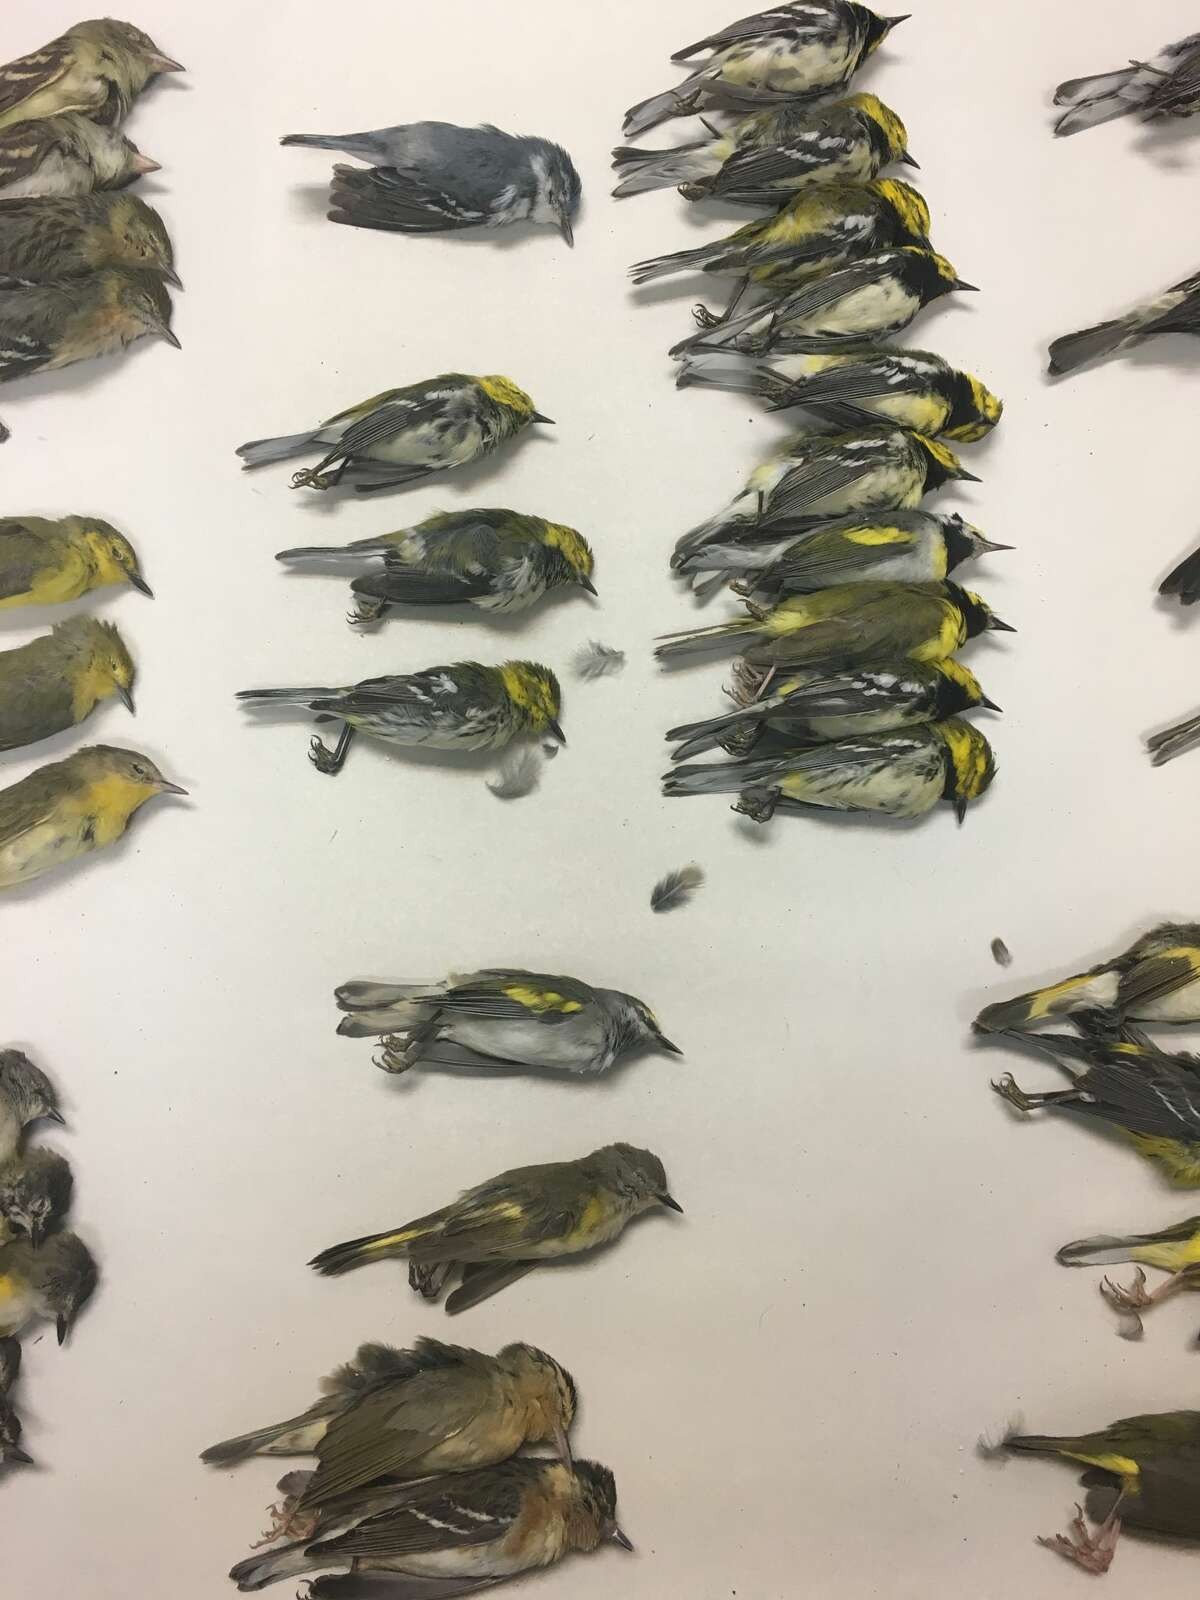 Photos of various birds that died Wednesday, May 3, after crashing into a high-rise building in Galveston. Animal Control Officer Josh Henderson said a total of 398 birds crashed into the building, and three birds survived.